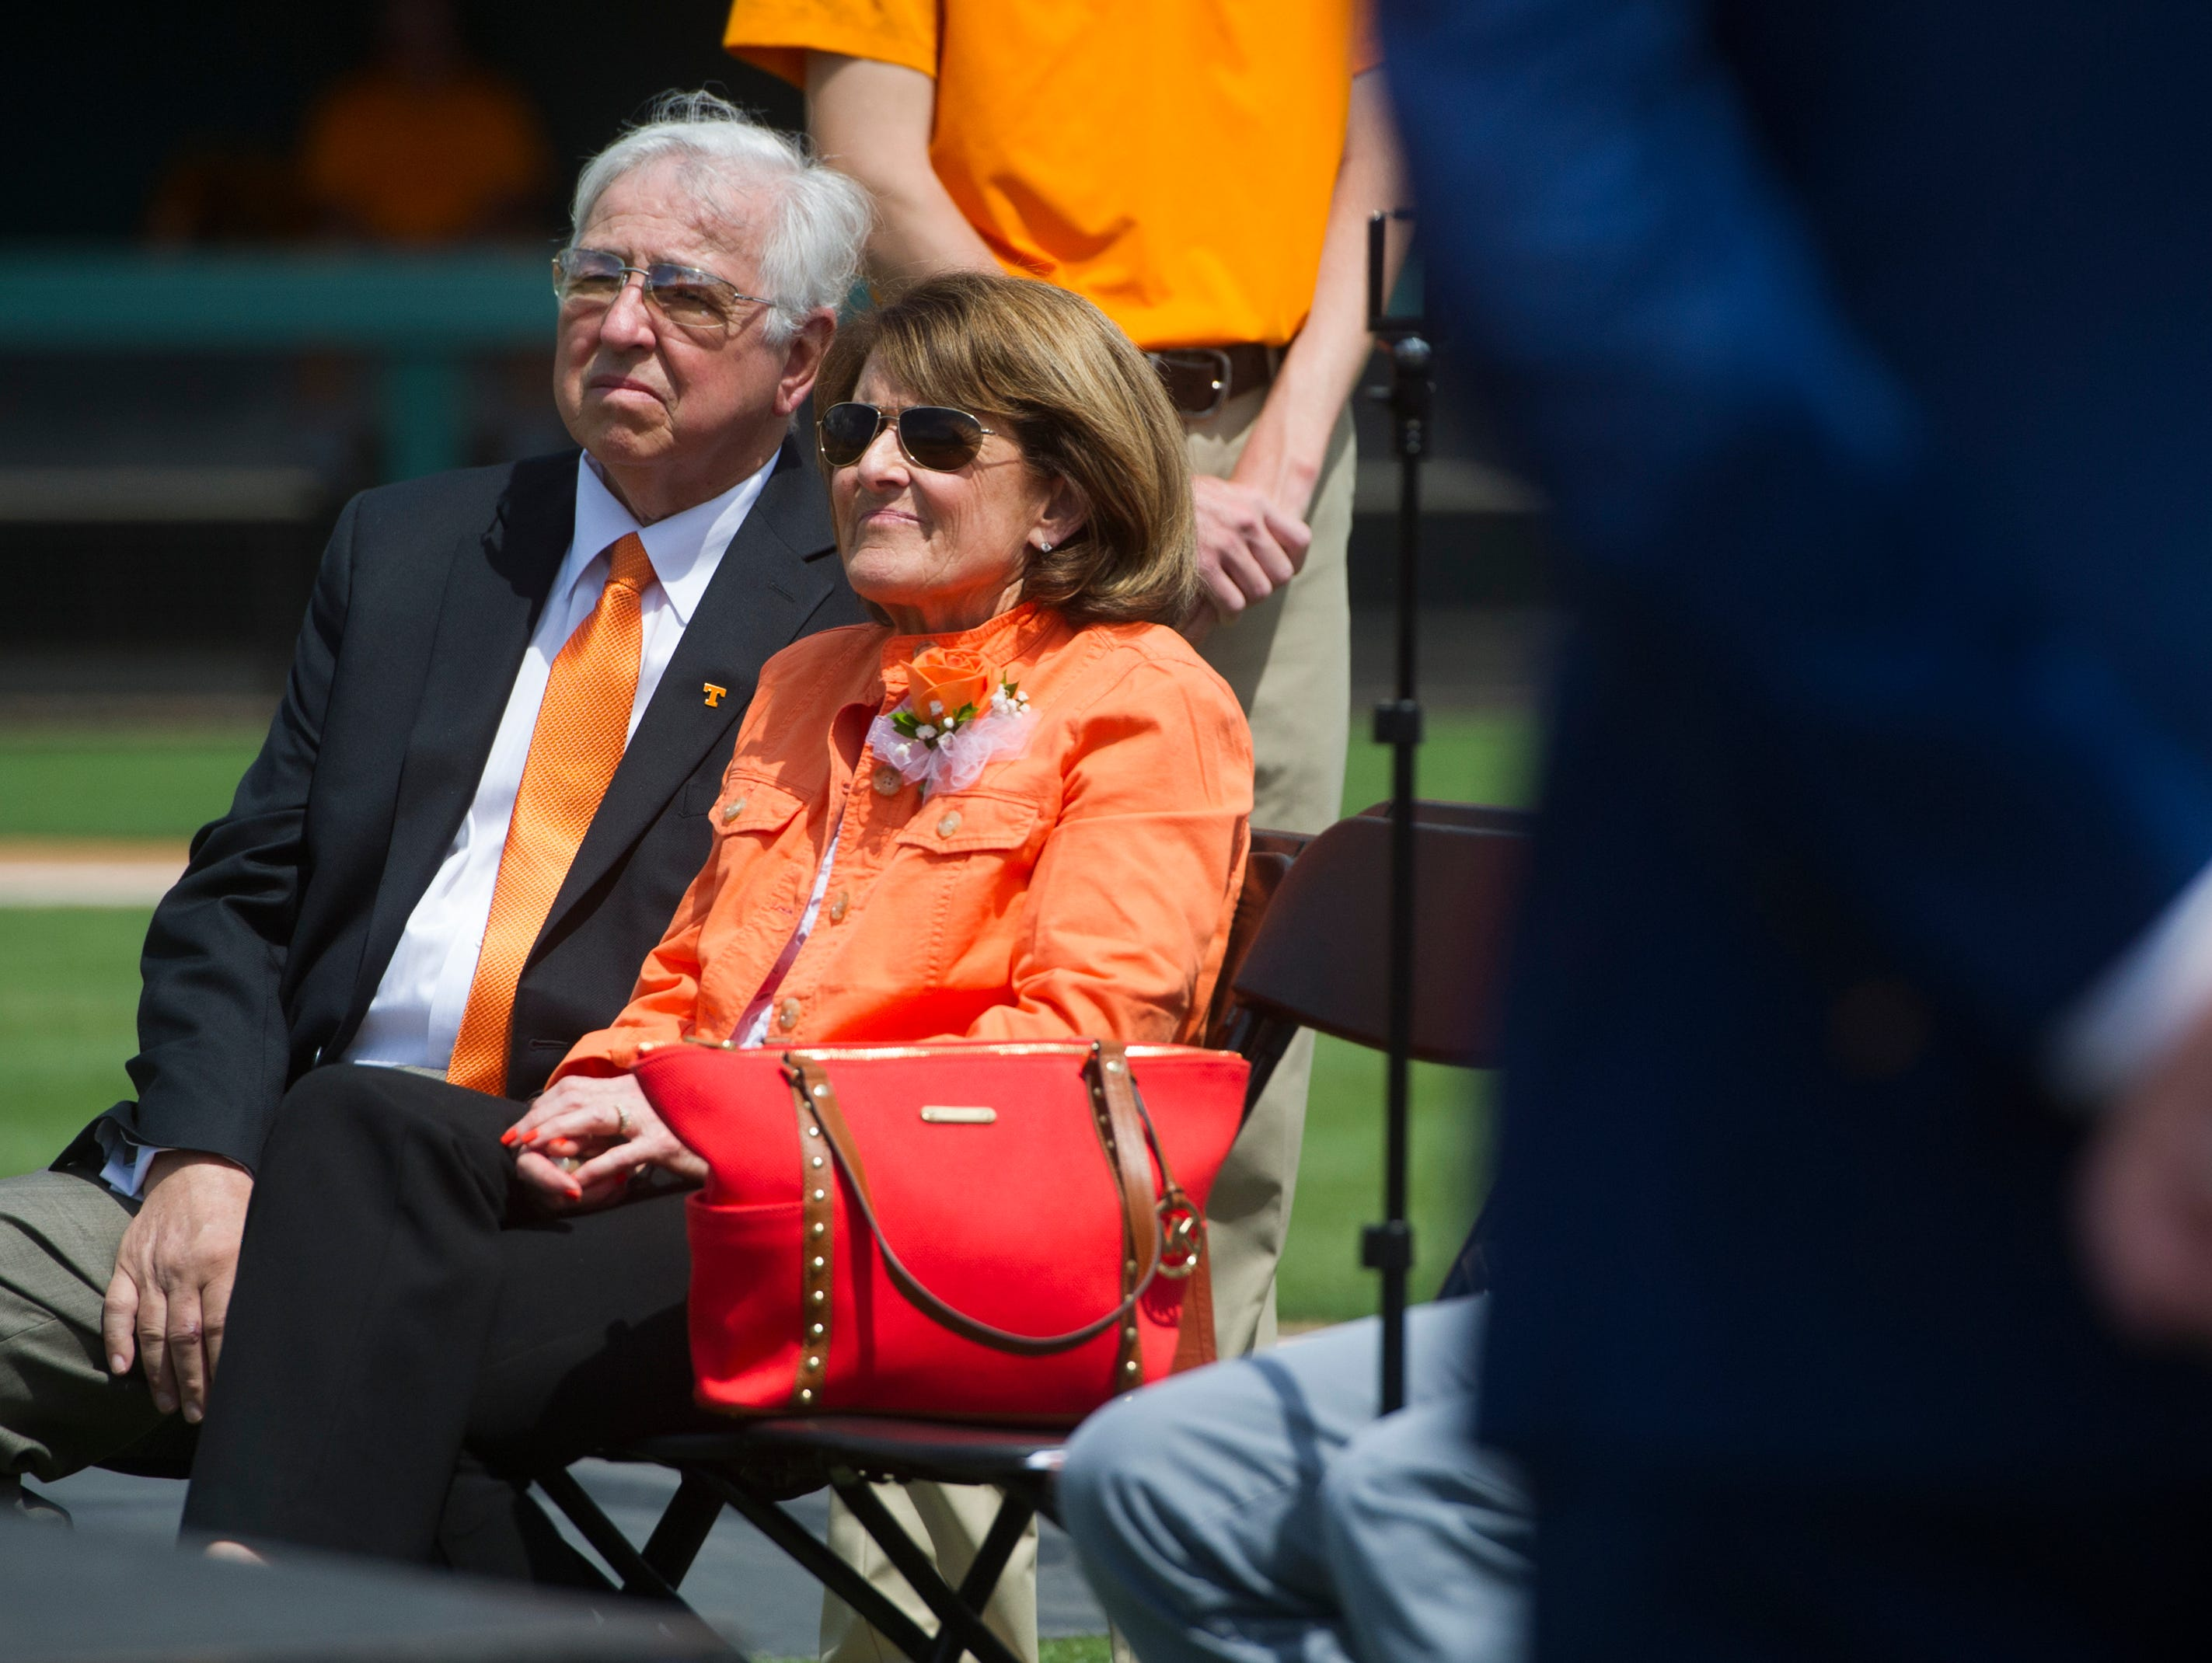 Greg and Kathy Vitello watch their son and new head coach of University of Tennessee baseball speak at a press conference at Lindsey Nelson Stadium on Friday June 9, 2017.